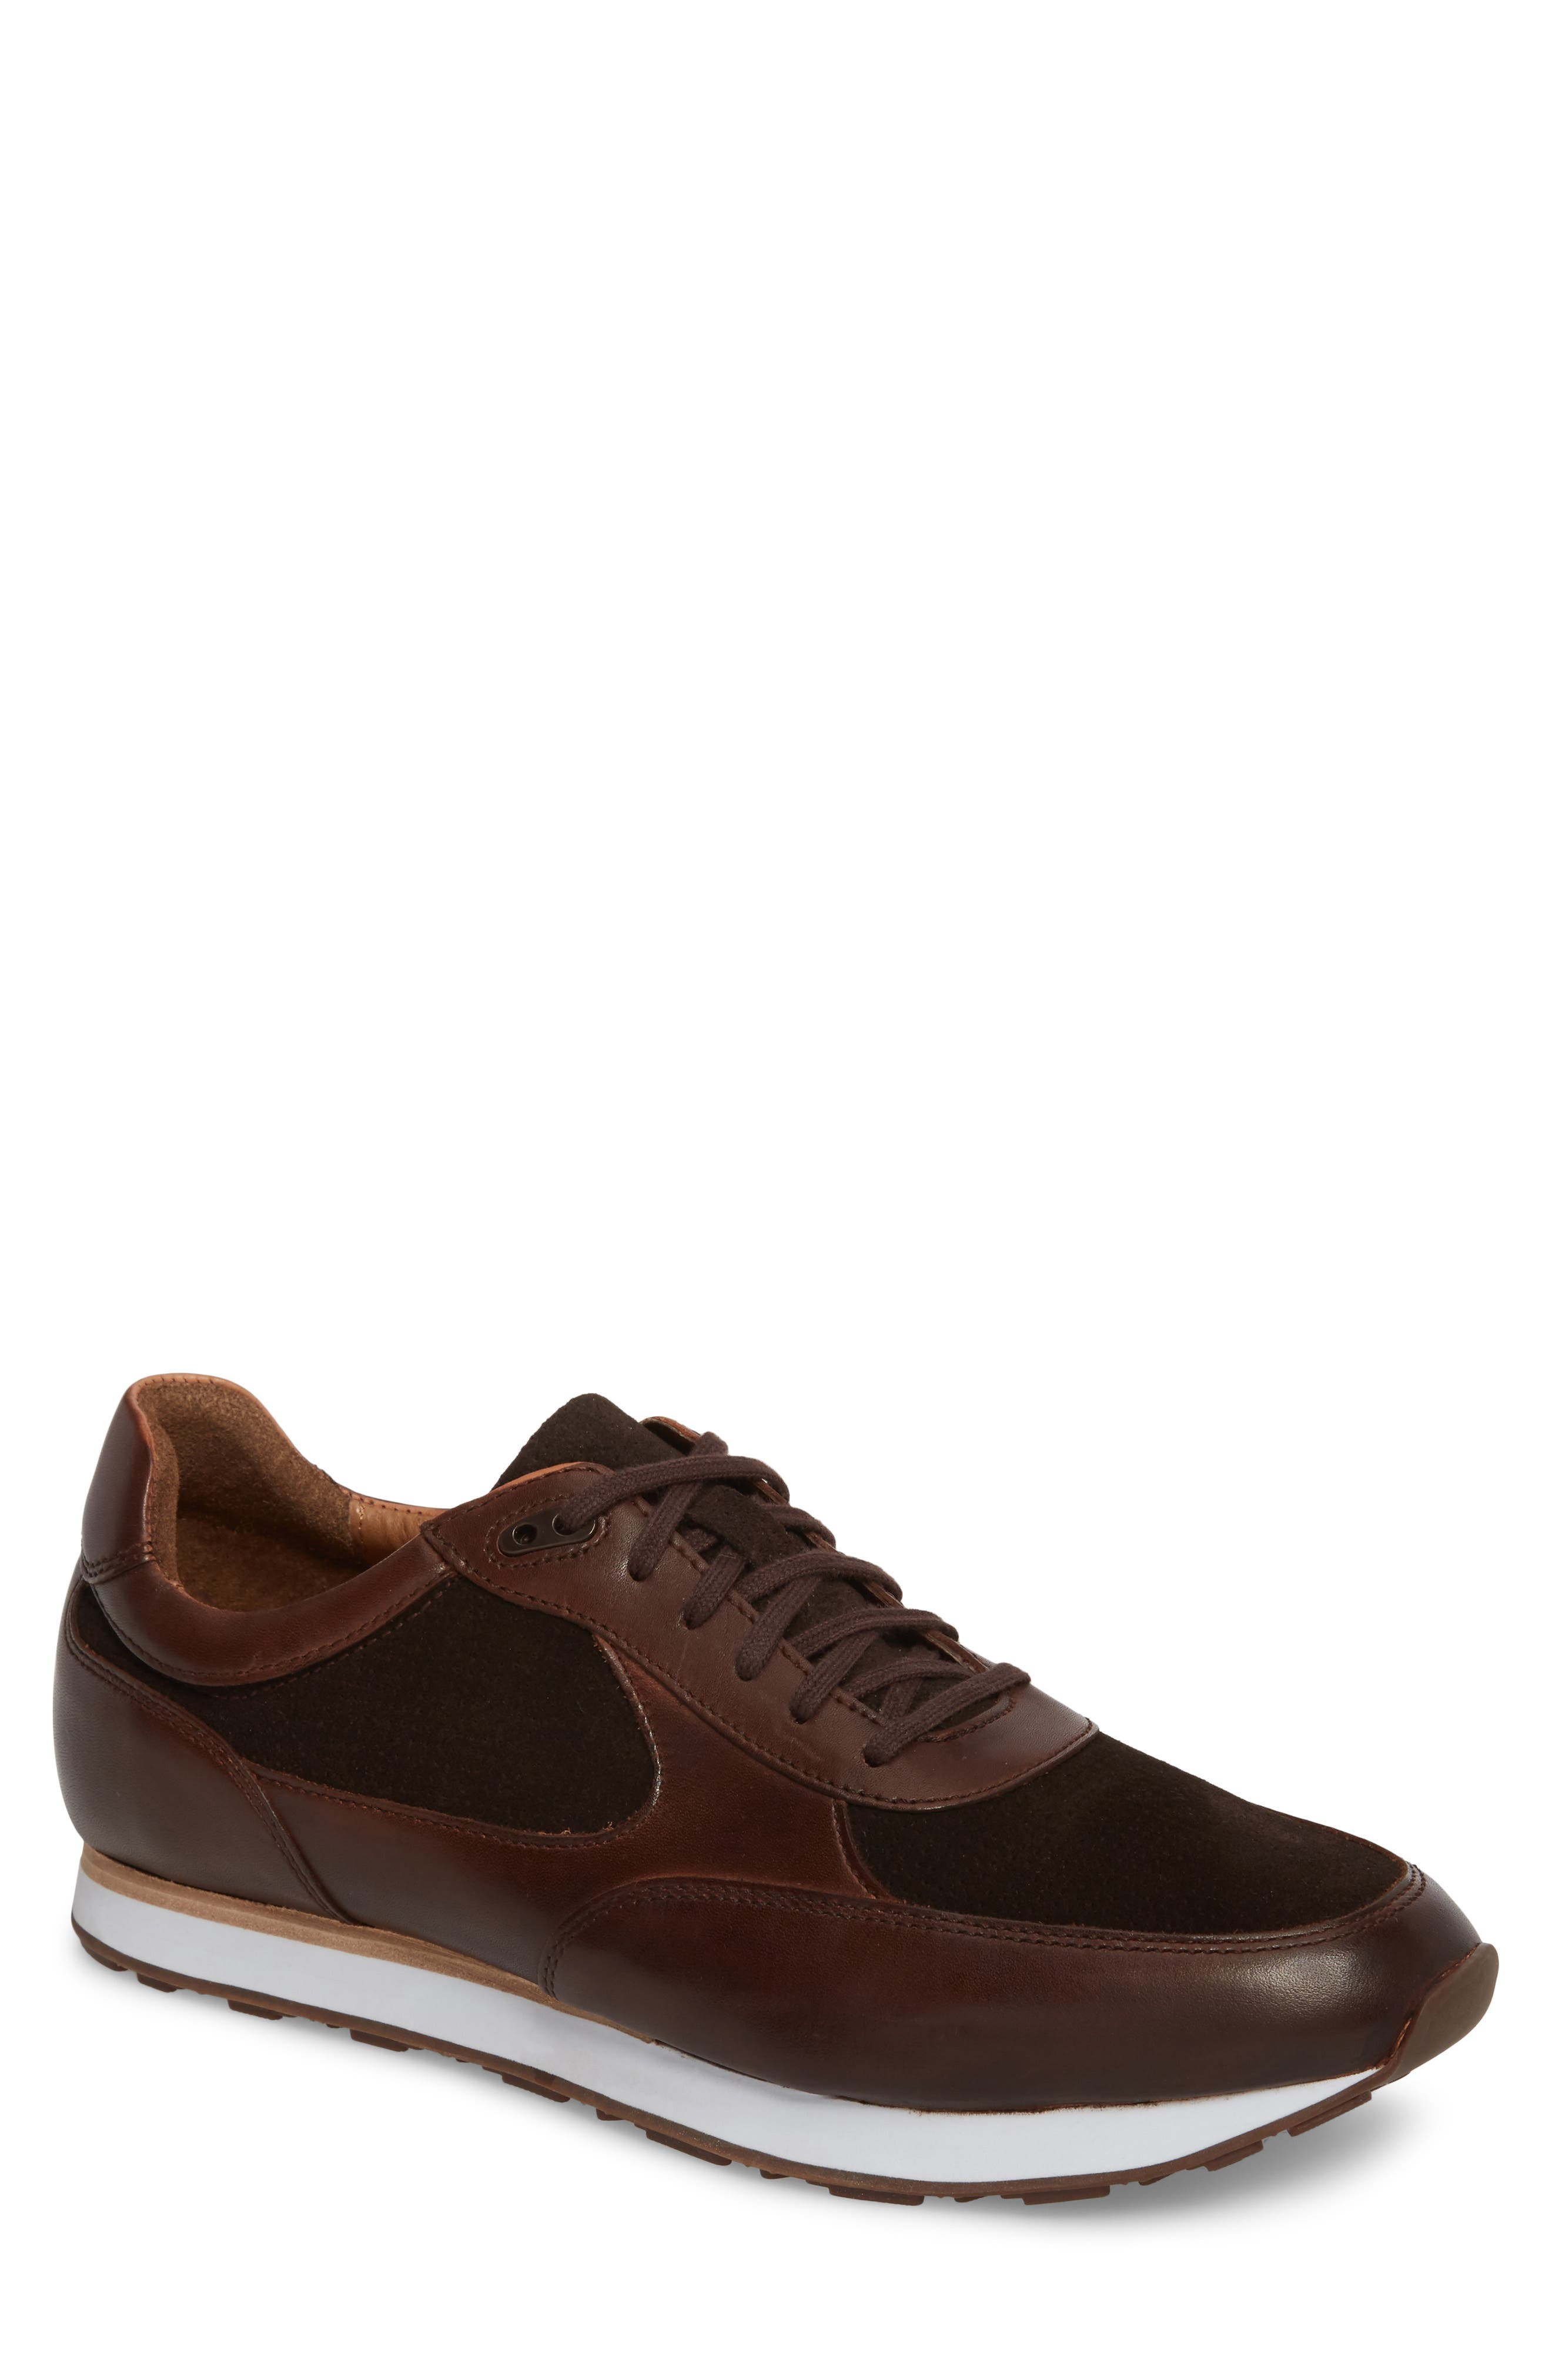 Malek Low Top Sneaker,                             Main thumbnail 1, color,                             Mahogany Leather/ Suede